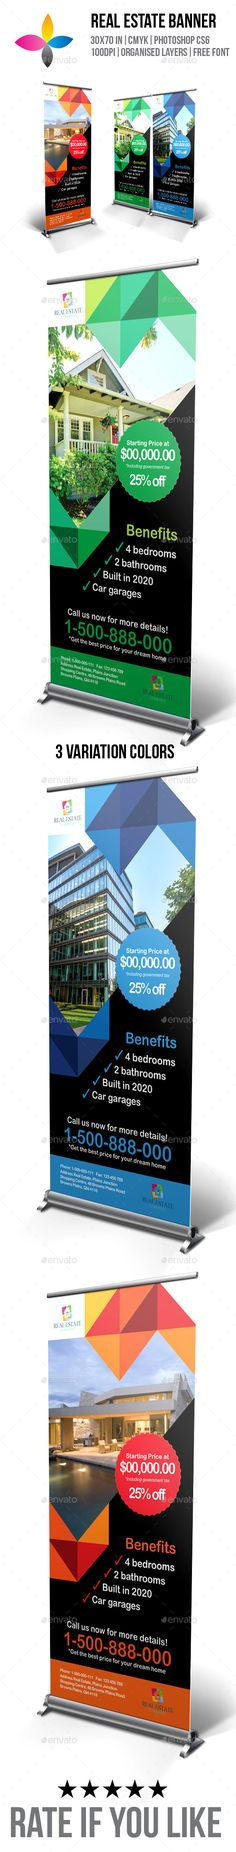 Real Estate Roll-Up Banner by inddesigner Roll-Up banner size Bleed Photoshop CMYK Arial Rounded MT Bold: Stand PC/MAC font Info file included Roll Up Design, Pop Up Banner, Real Estate Branding, Banner Stands, Cool Business Cards, Banner Template, Print Templates, Digital Signage, Banner Design